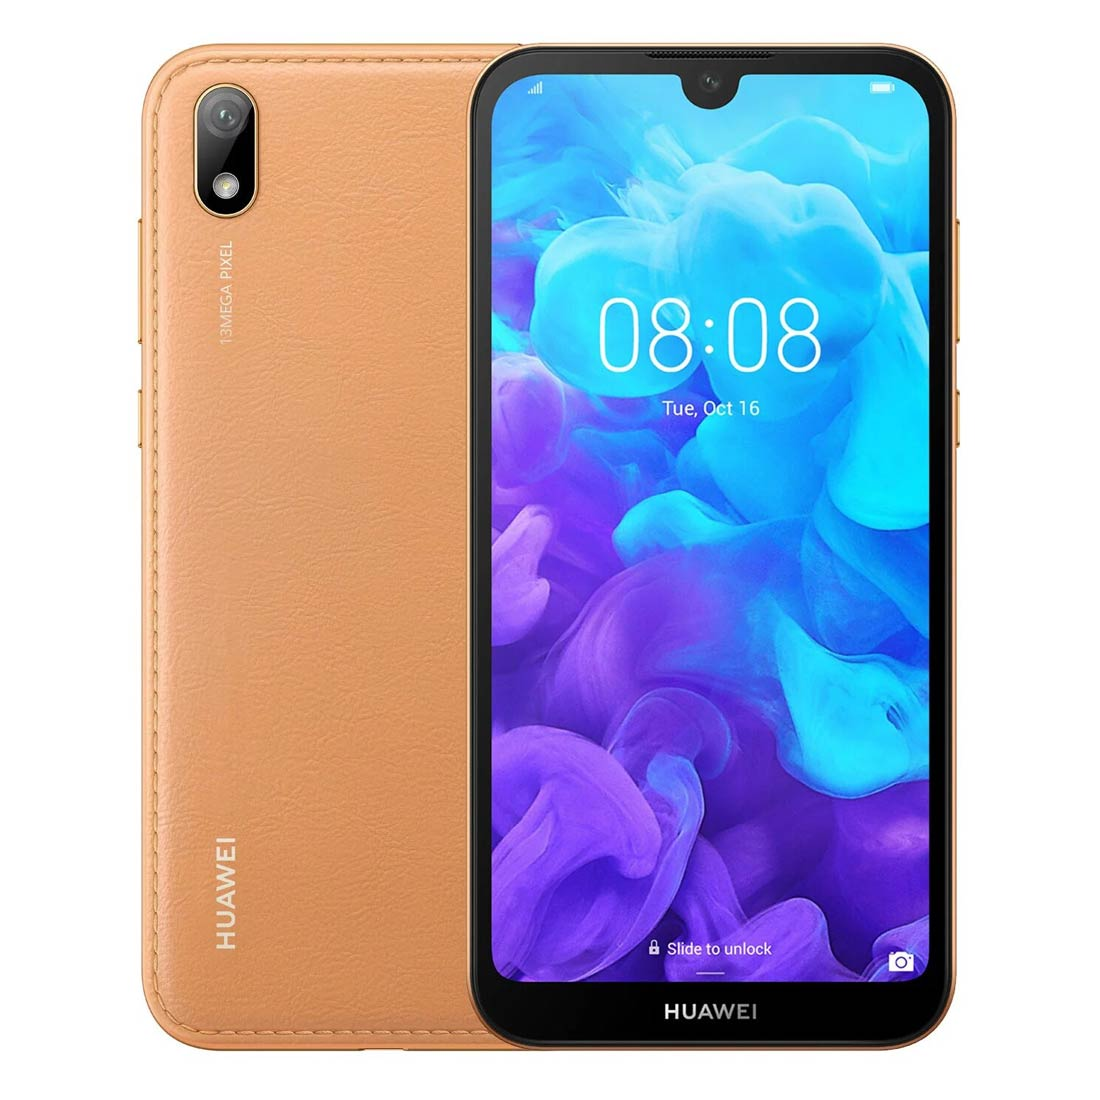 Huawei Y5 2019 (Dual SIM 4G/4G, 32GB/2GB, Faux Leather) - Amber Brown